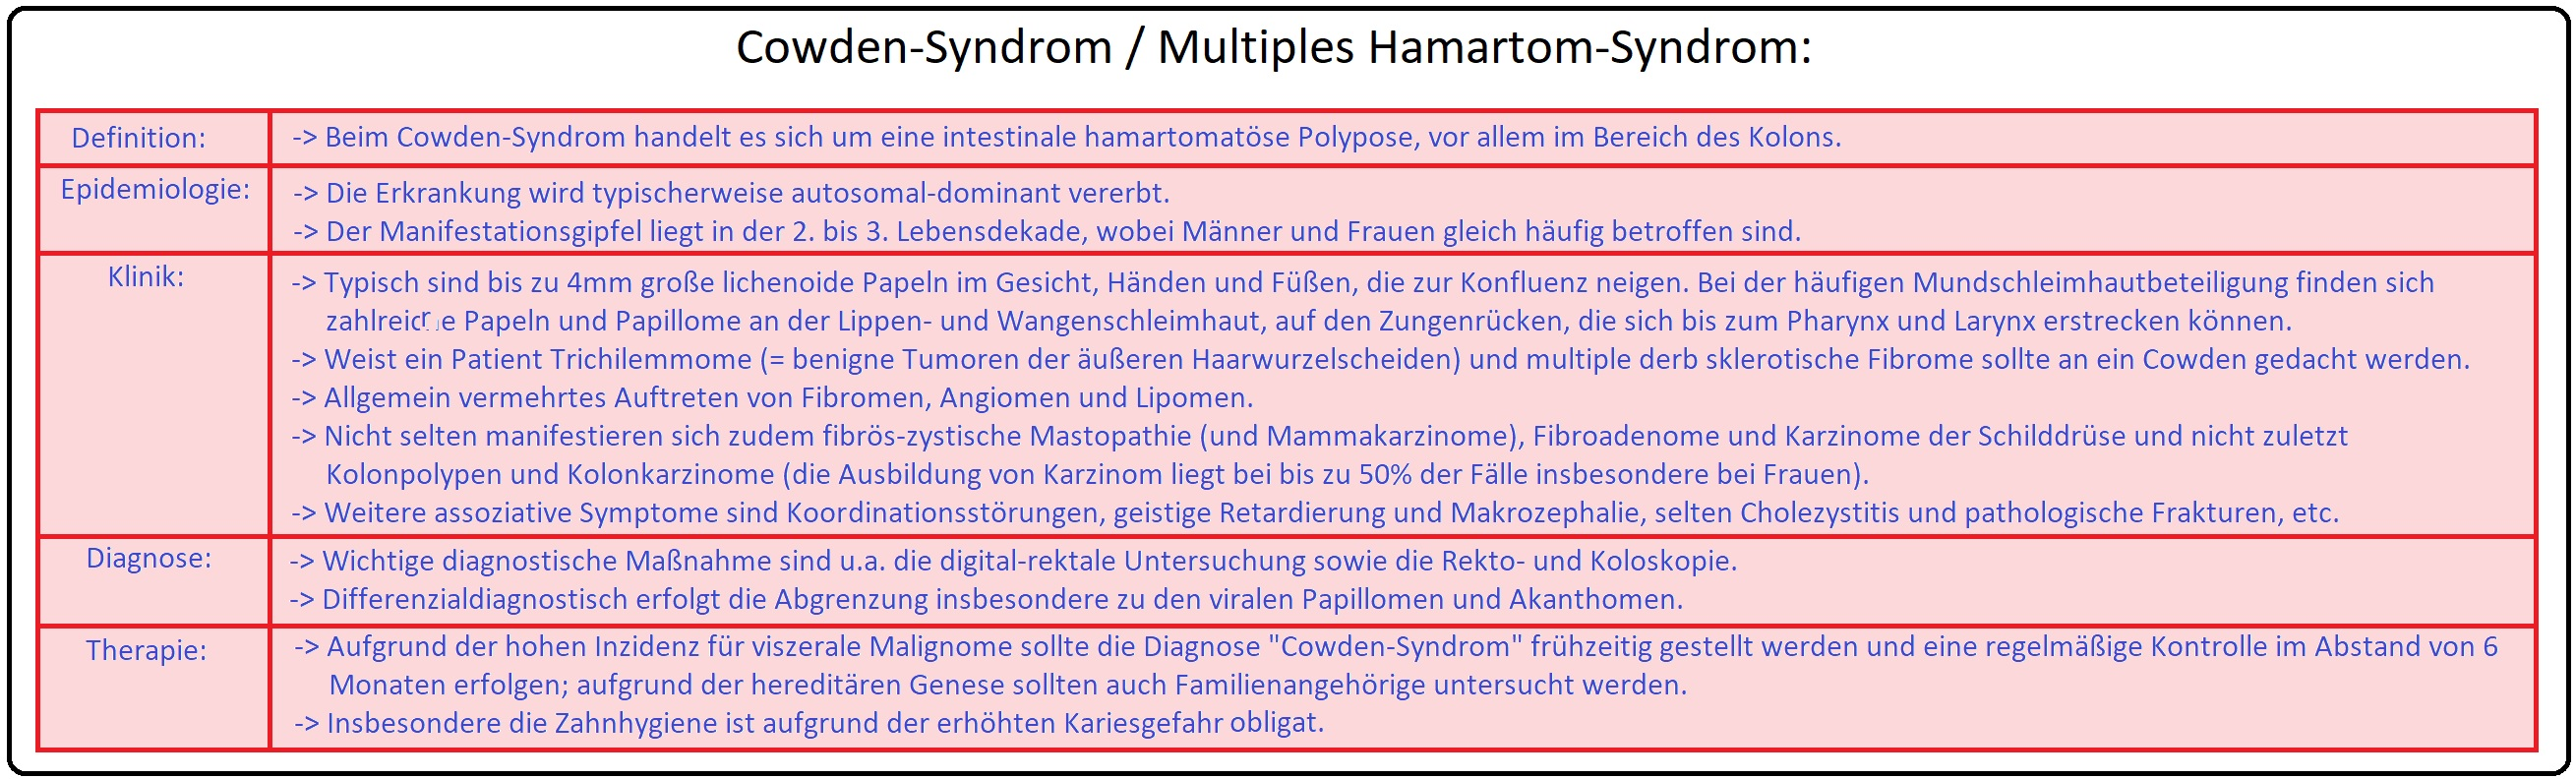 999 Cowden Syndrom   Multiples Hamartom Syndrom